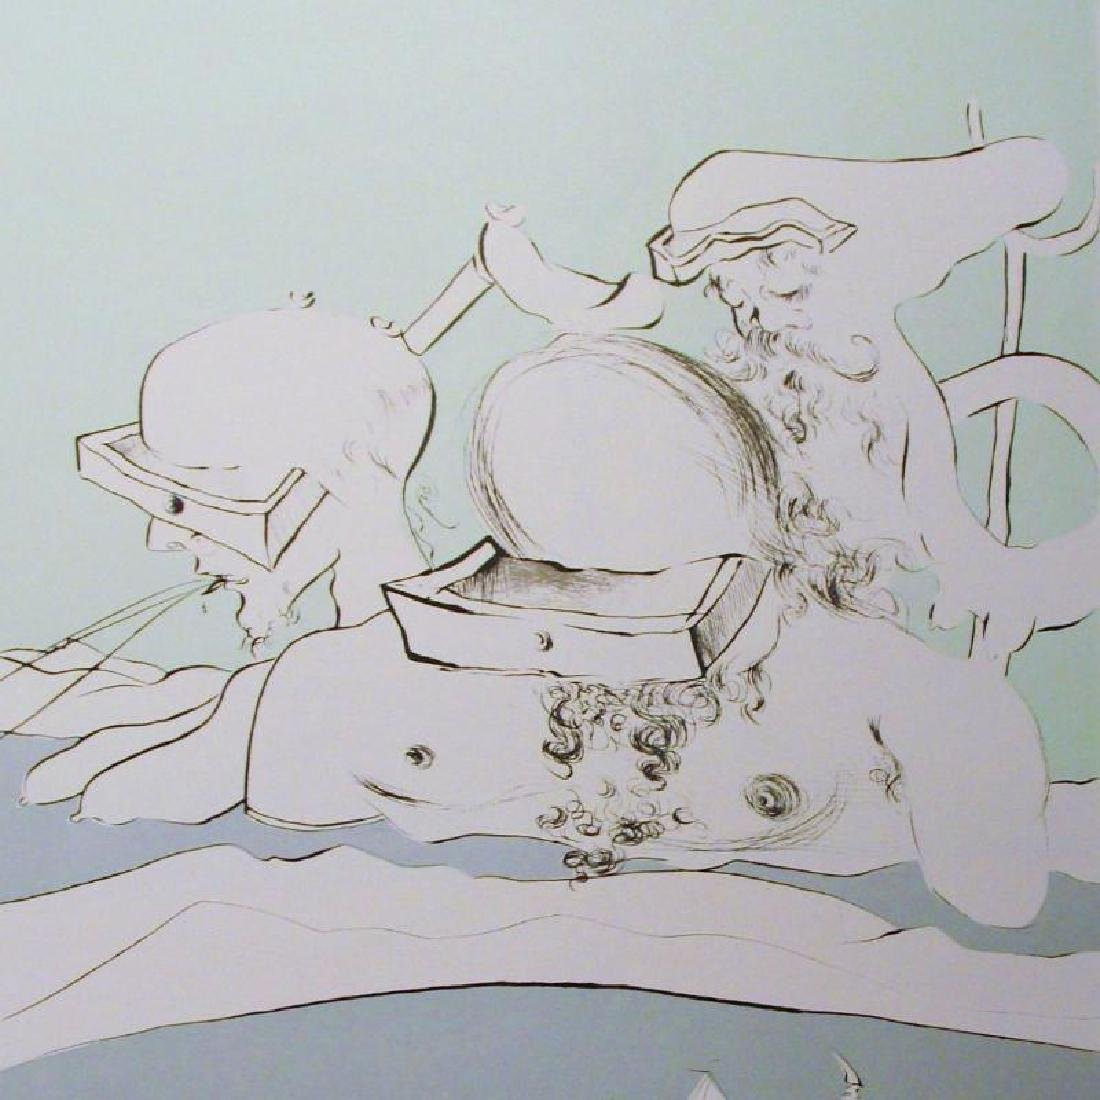 Salvador Dali Surreal Abstract Lithographic Poster Sale - 3